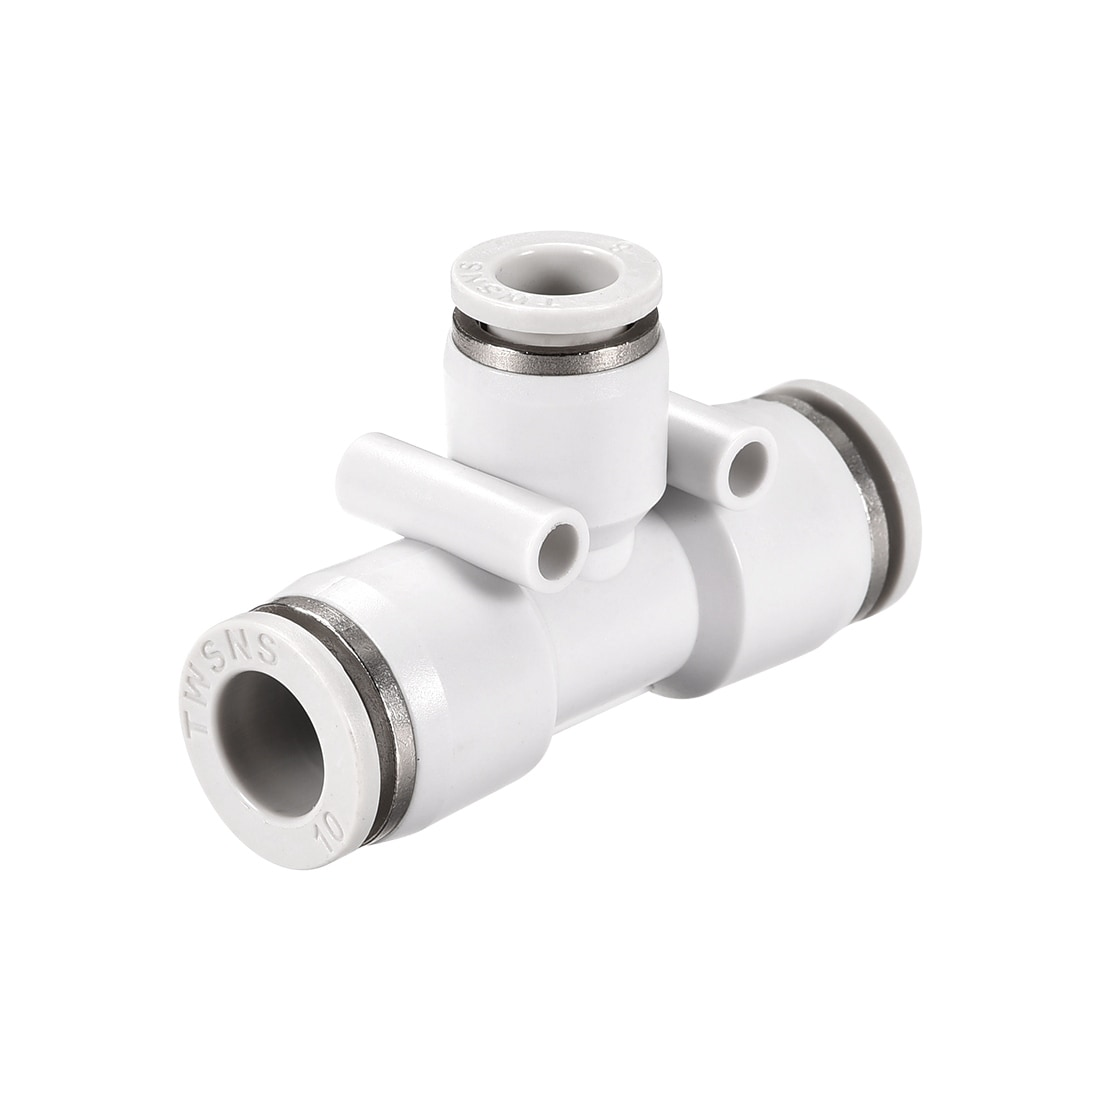 Plastic Tee Push To Connect Tube Fittings 8mm-6mm od Push Lock White 2pcs